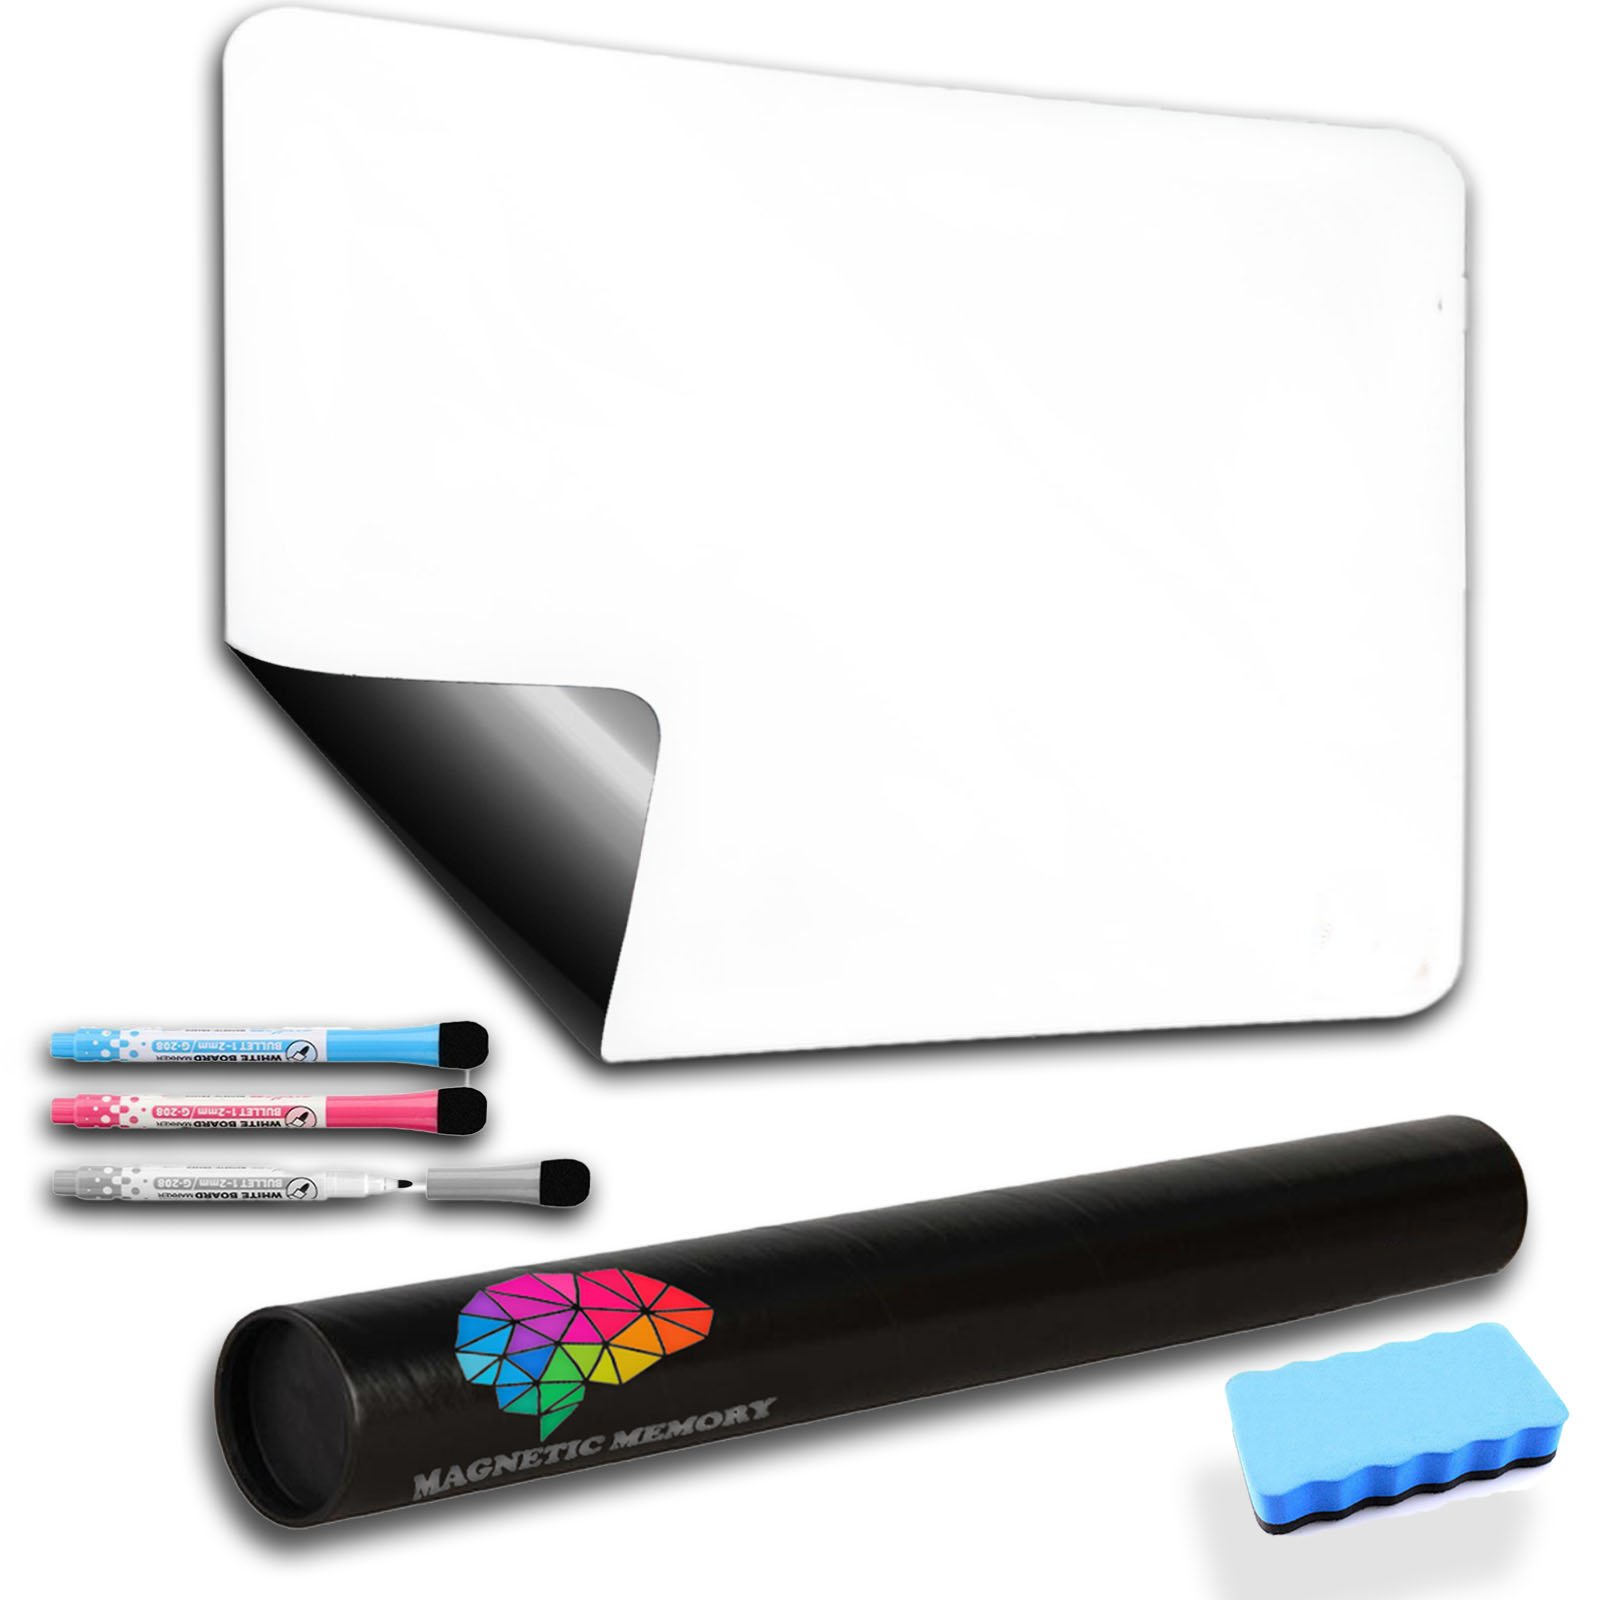 "Magnetic Dry Erase Whiteboard Sheet for Refrigerator, 17x11"", The Perfect Planner and Organizer, Accessories Included: Dry Erase Markers and Big Eraser,– by Magnetic Memory."